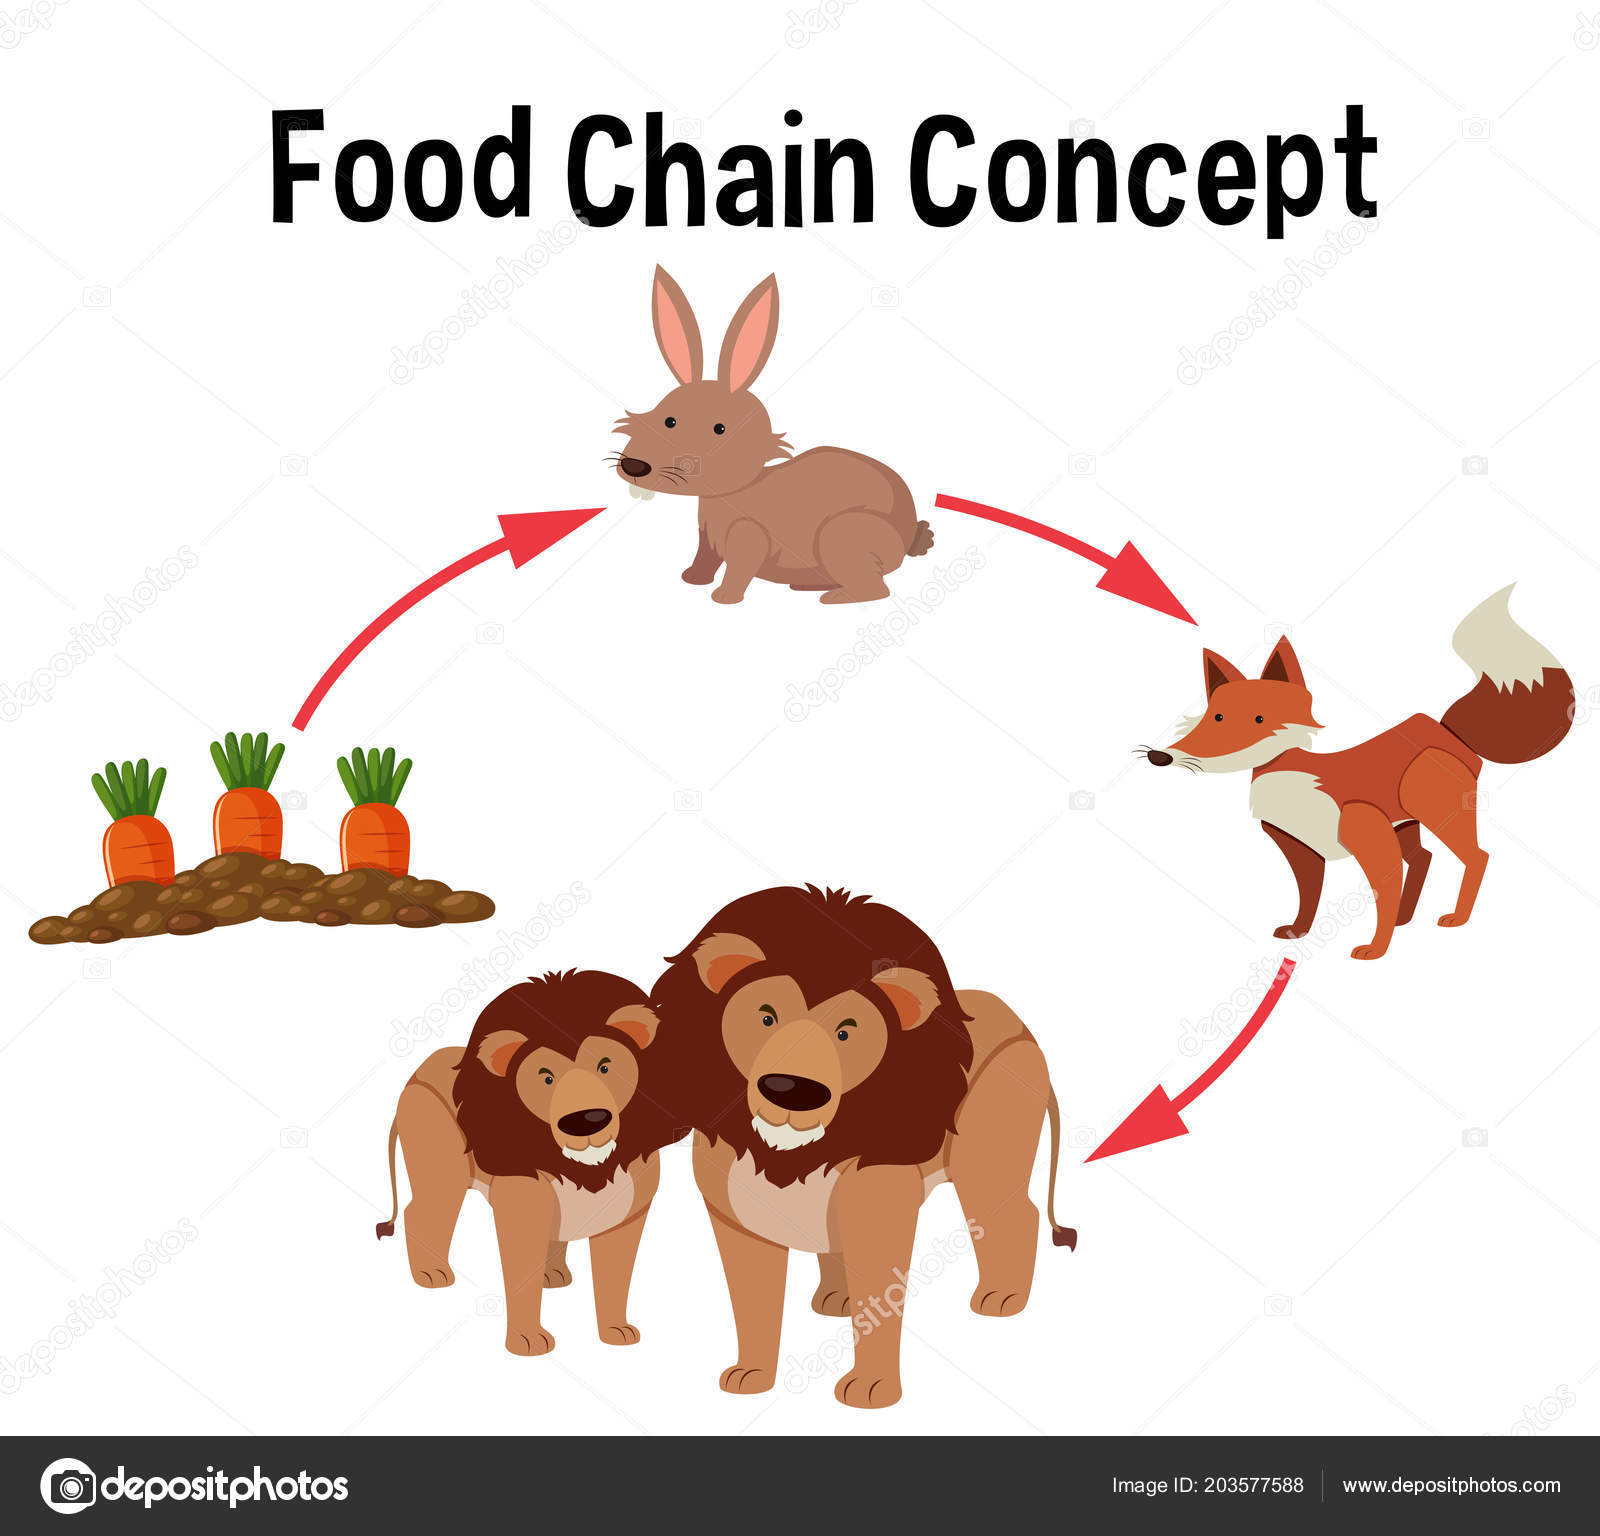 The Food Chain Diagram